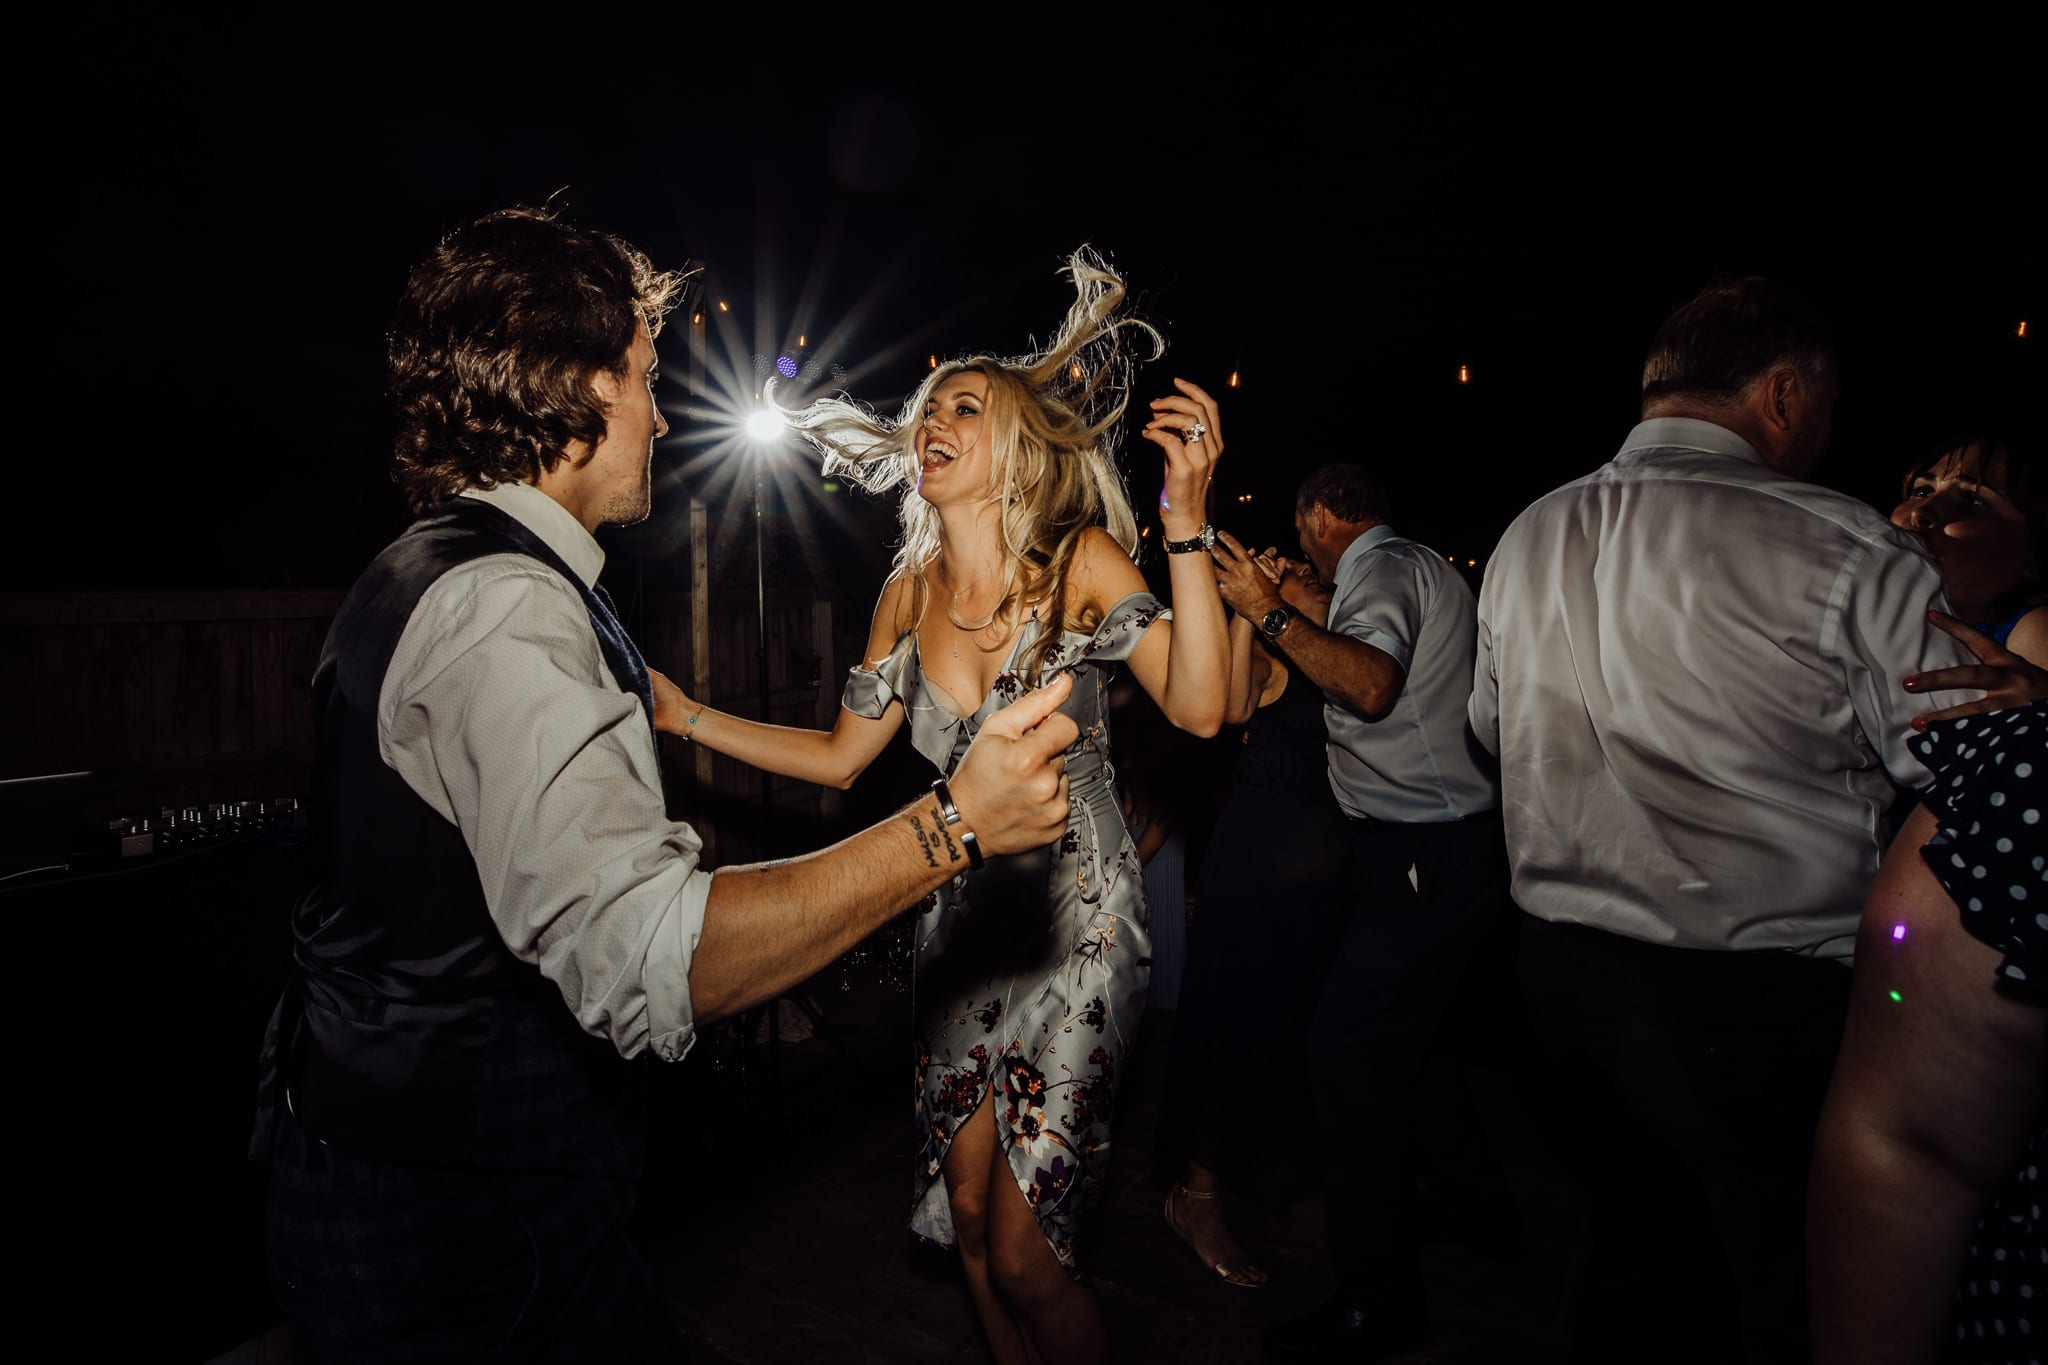 wedding guest dancing with her hair flying